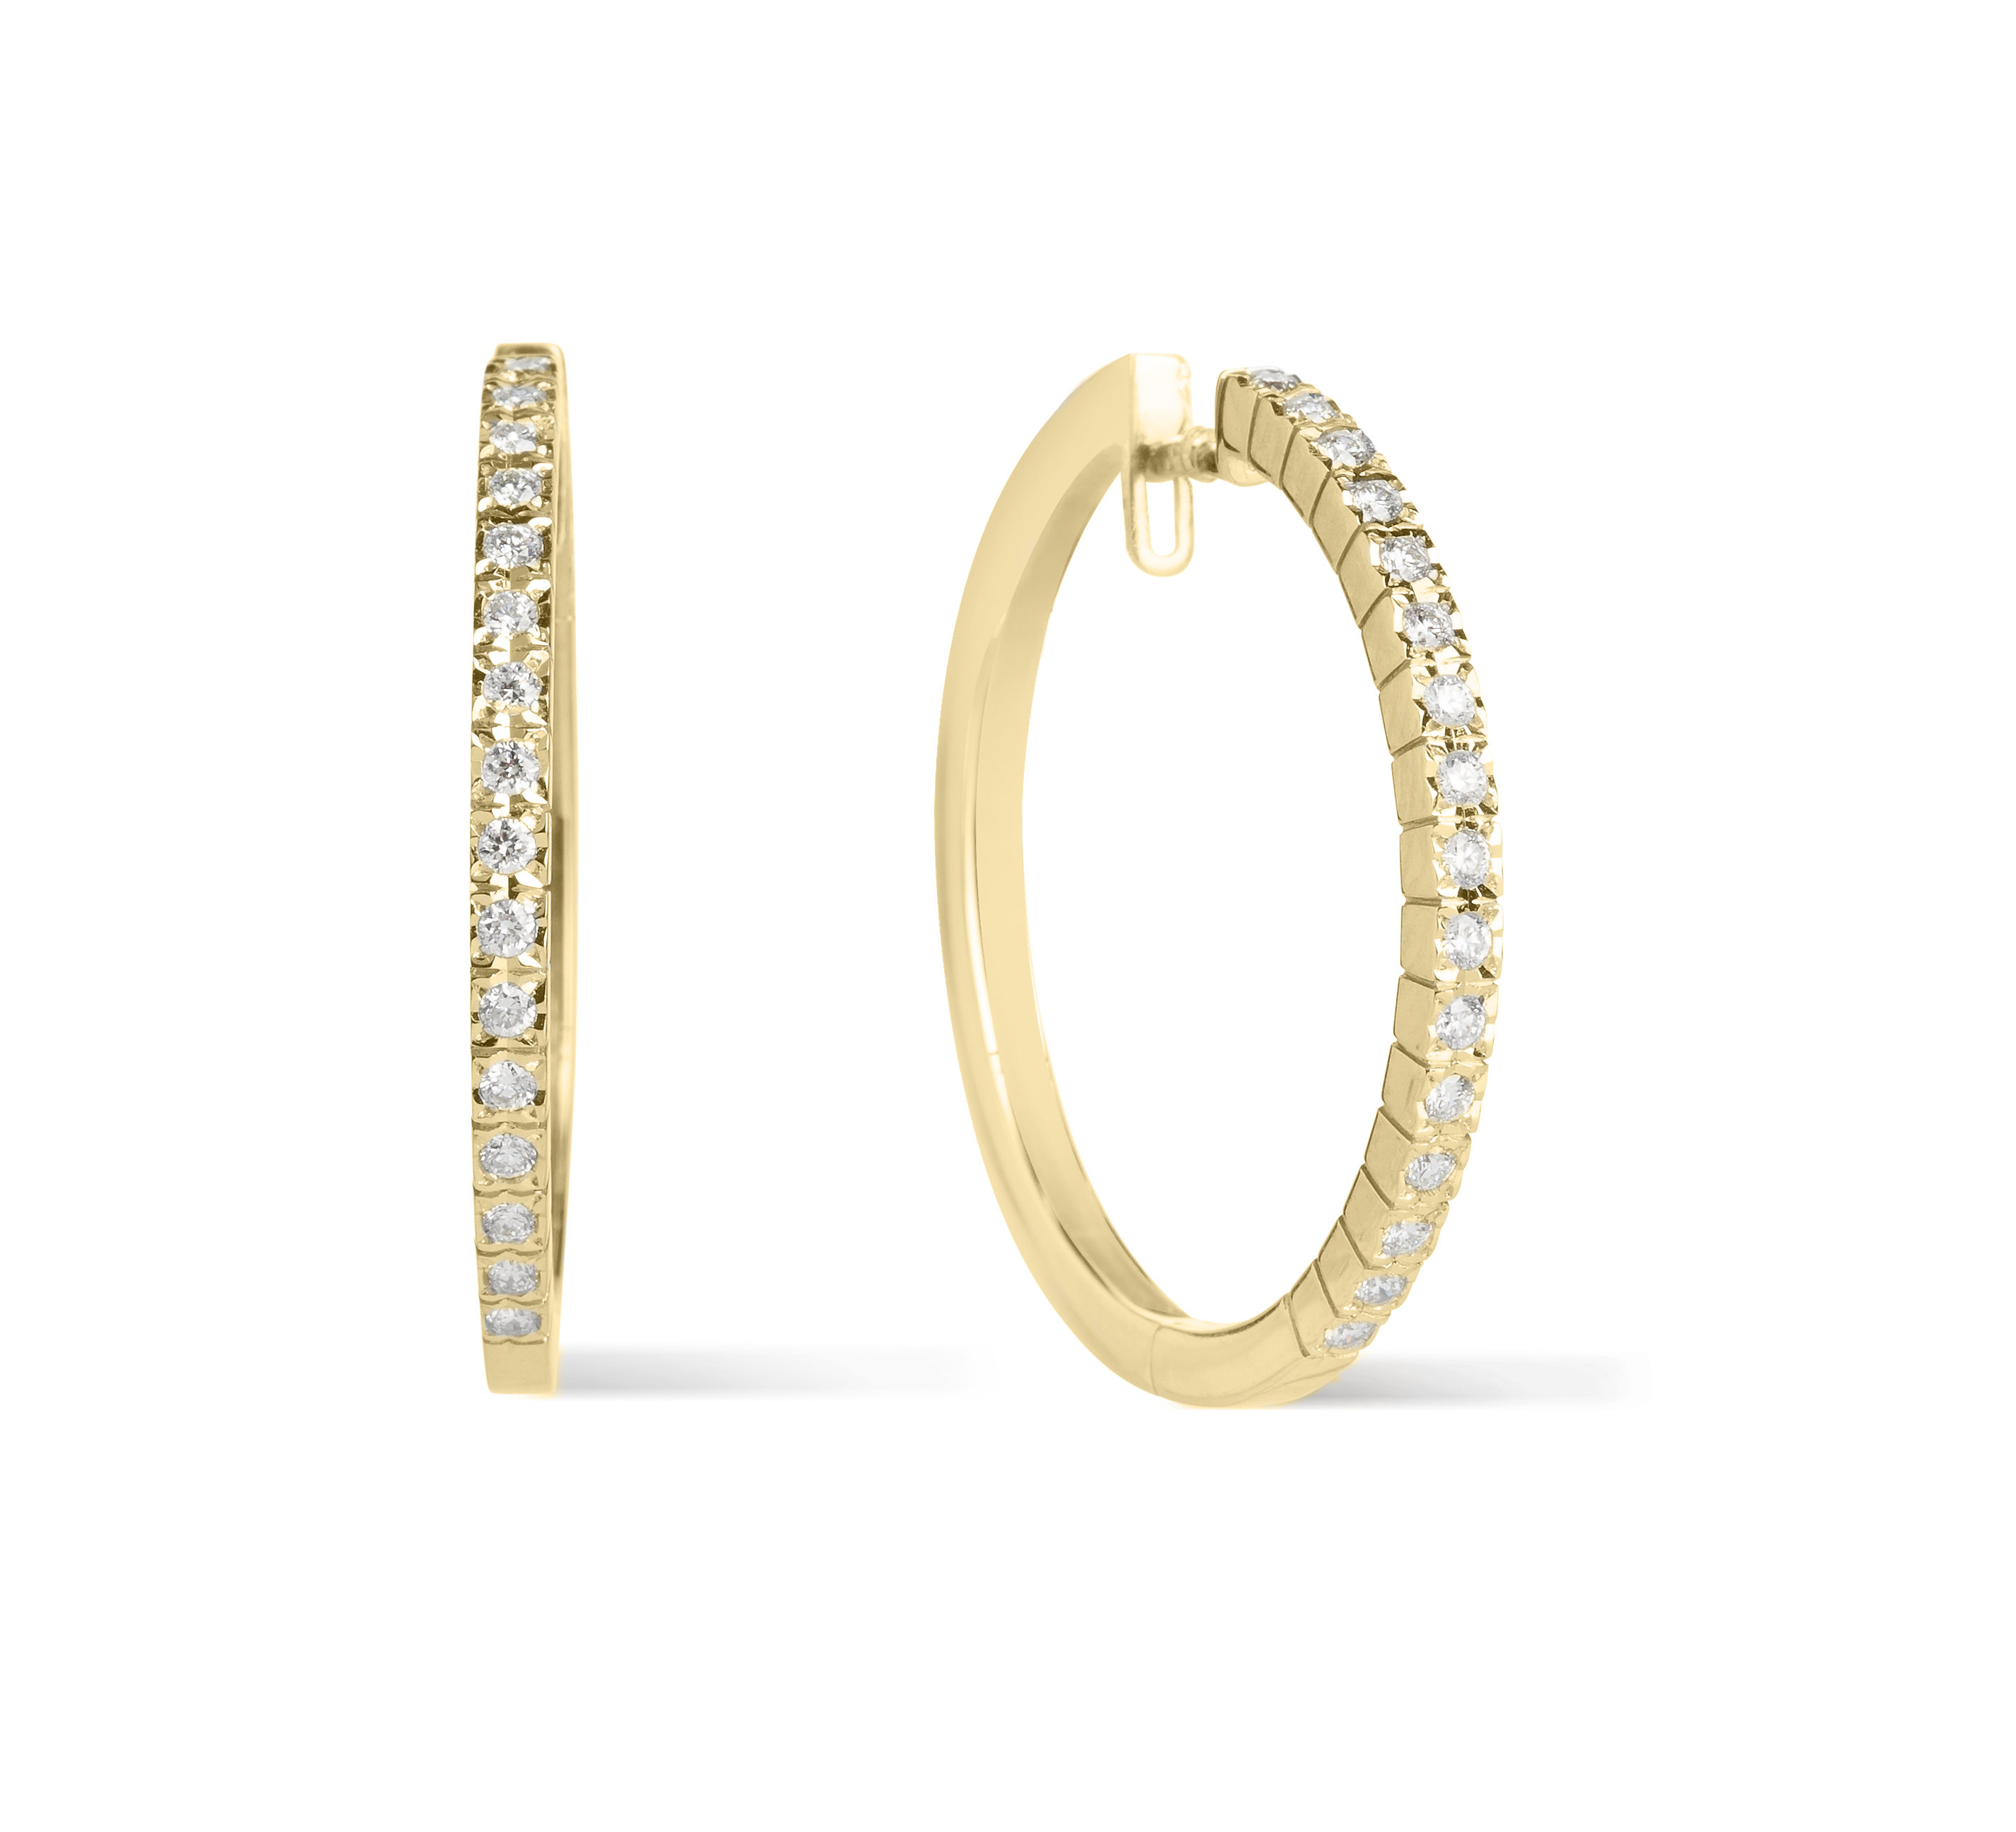 Dazzling, round, brilliant-cut diamond hoop earrings in a simplistic, claw setting in solid 18ct yellow gold with a secure catch for extra safety; hand-finished and made in England. (Approximate size to scale as a 50p!)